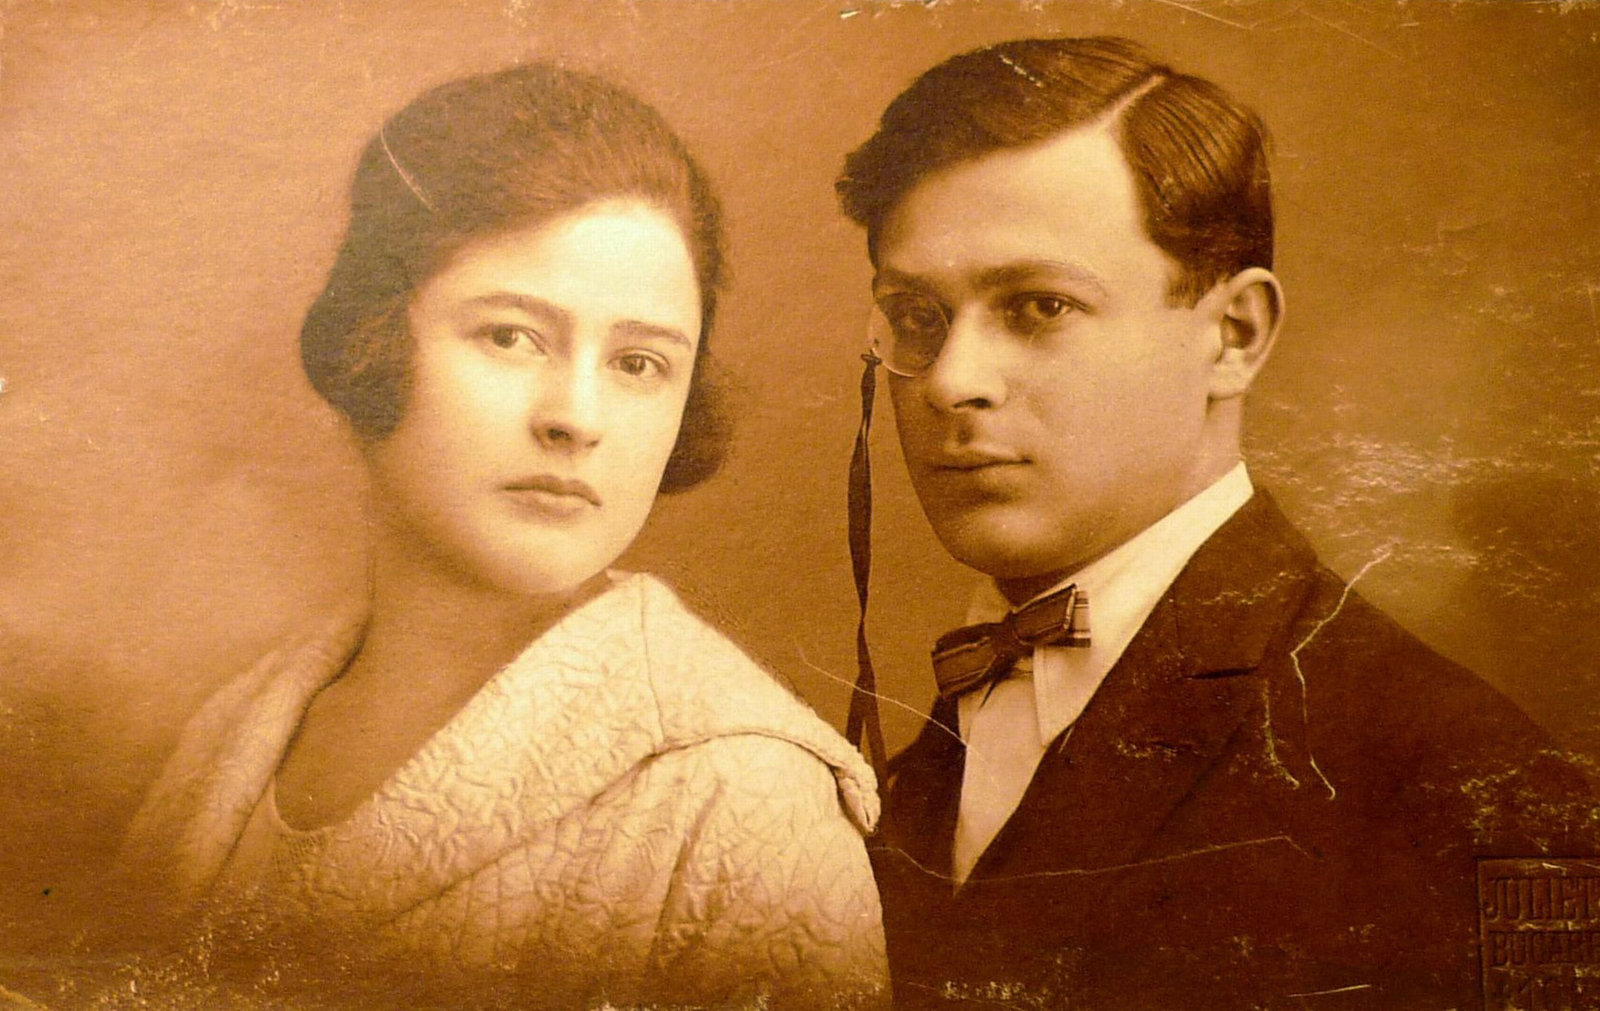 Samy Rosenstock (later Tristan Tzara ) and his sister Lucia Rosenstock, 1902, Unknown, Private collection, Copyright Not Evaluated